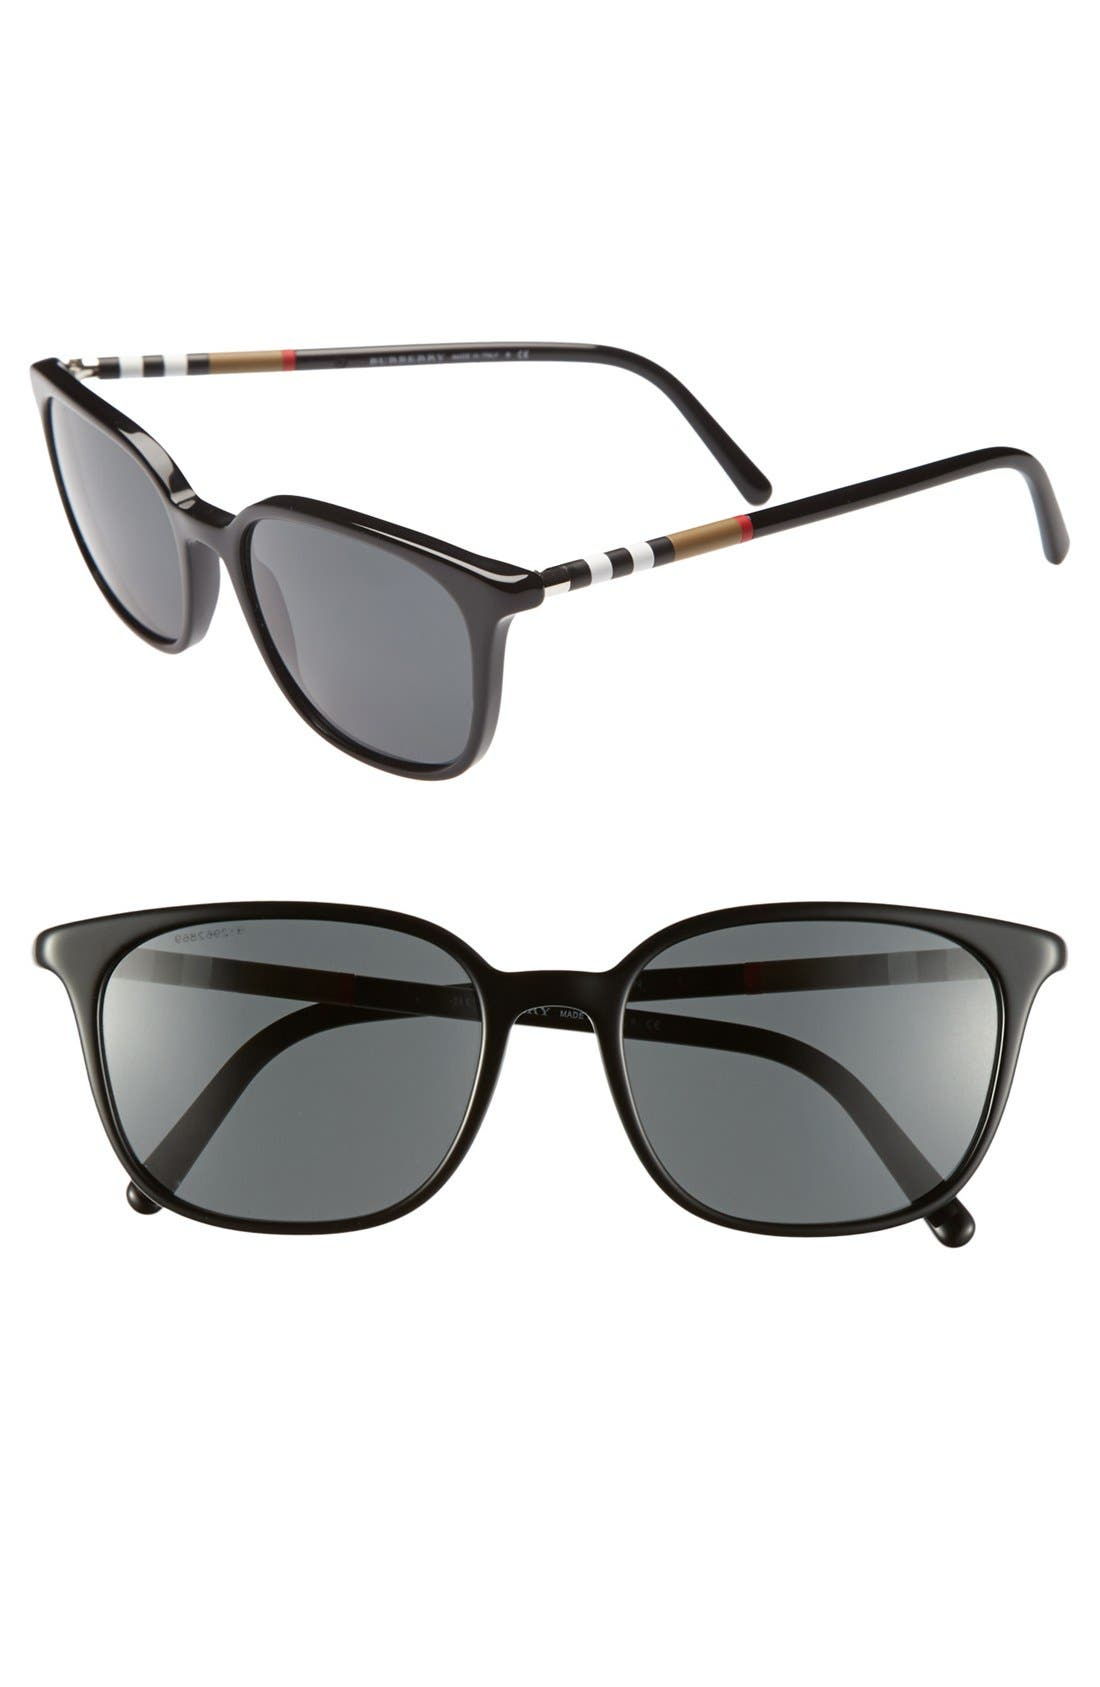 Main Image - Burberry 54mm Retro Sunglasses